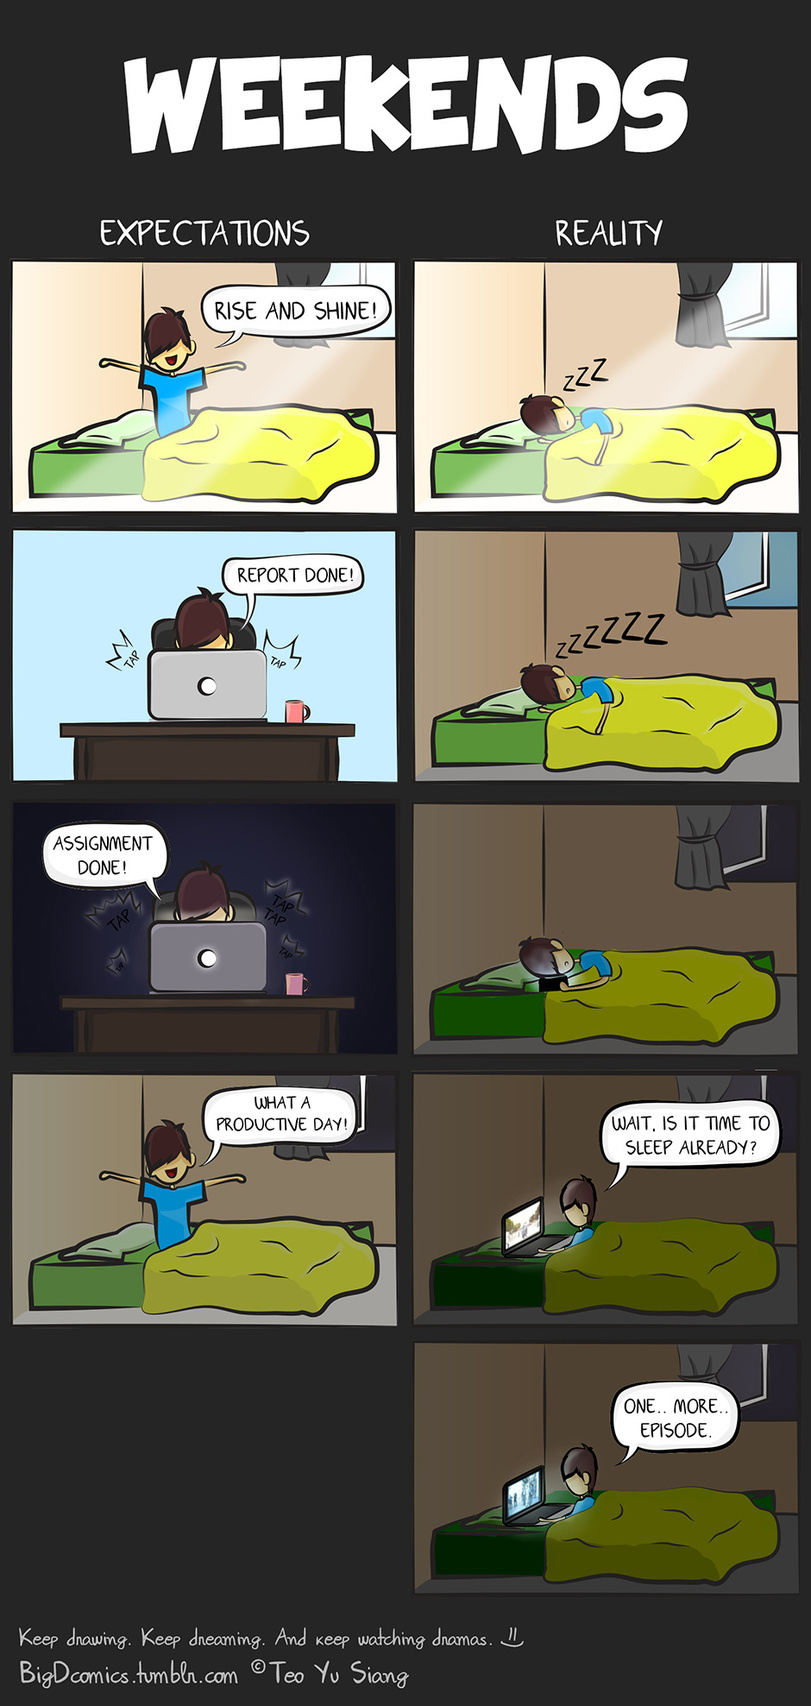 funny-weekend-sleep-homework-expectation-vs-reality